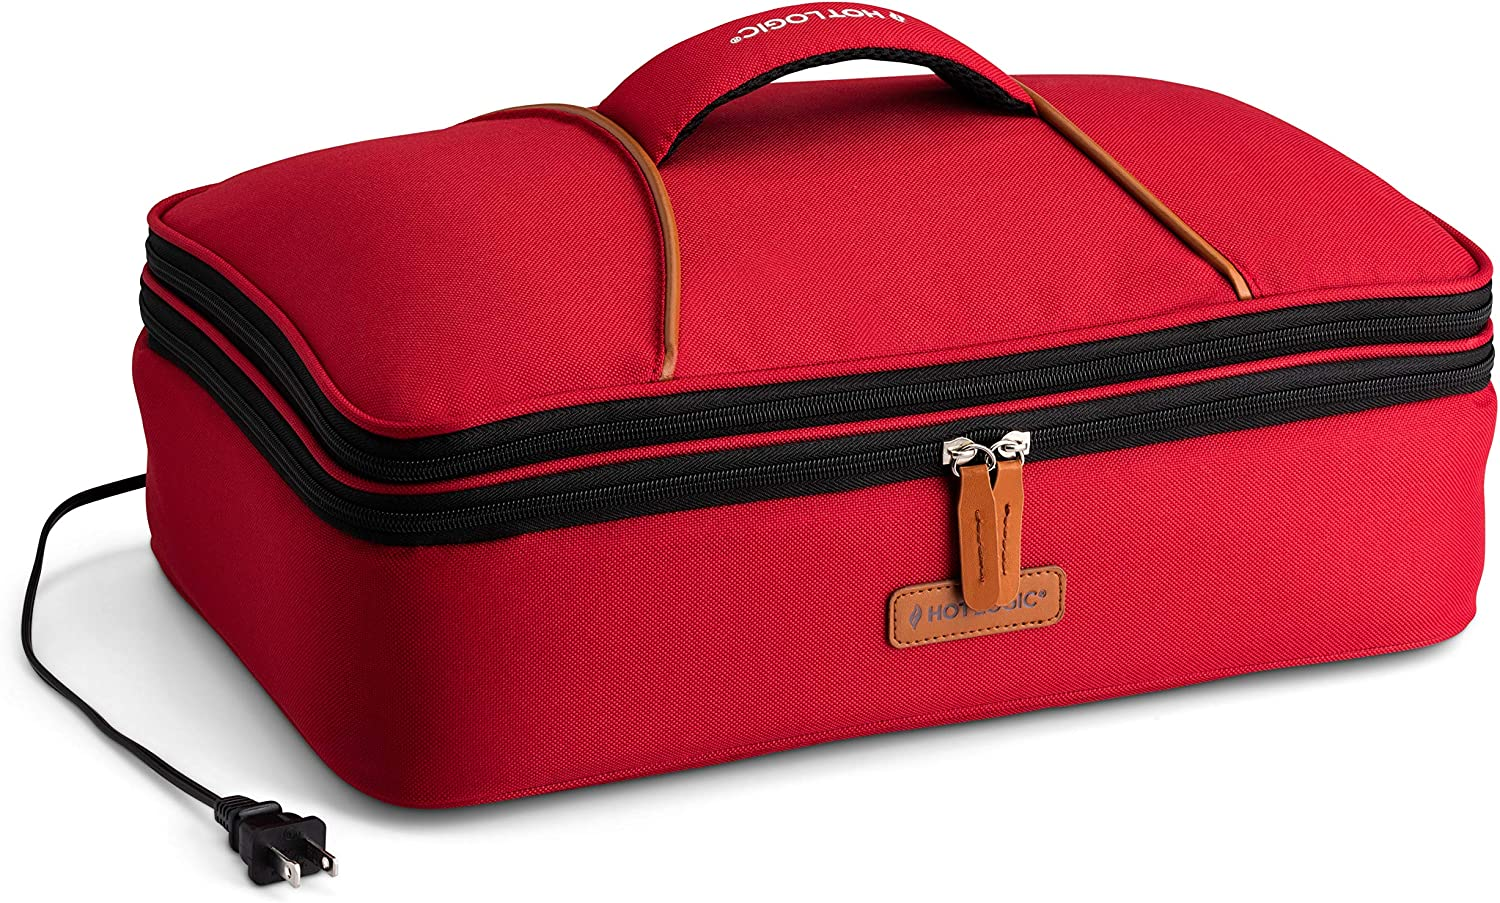 HotLogic 16801170-RD Food Warming Tote Casserole Carrier Plus 120V, Red